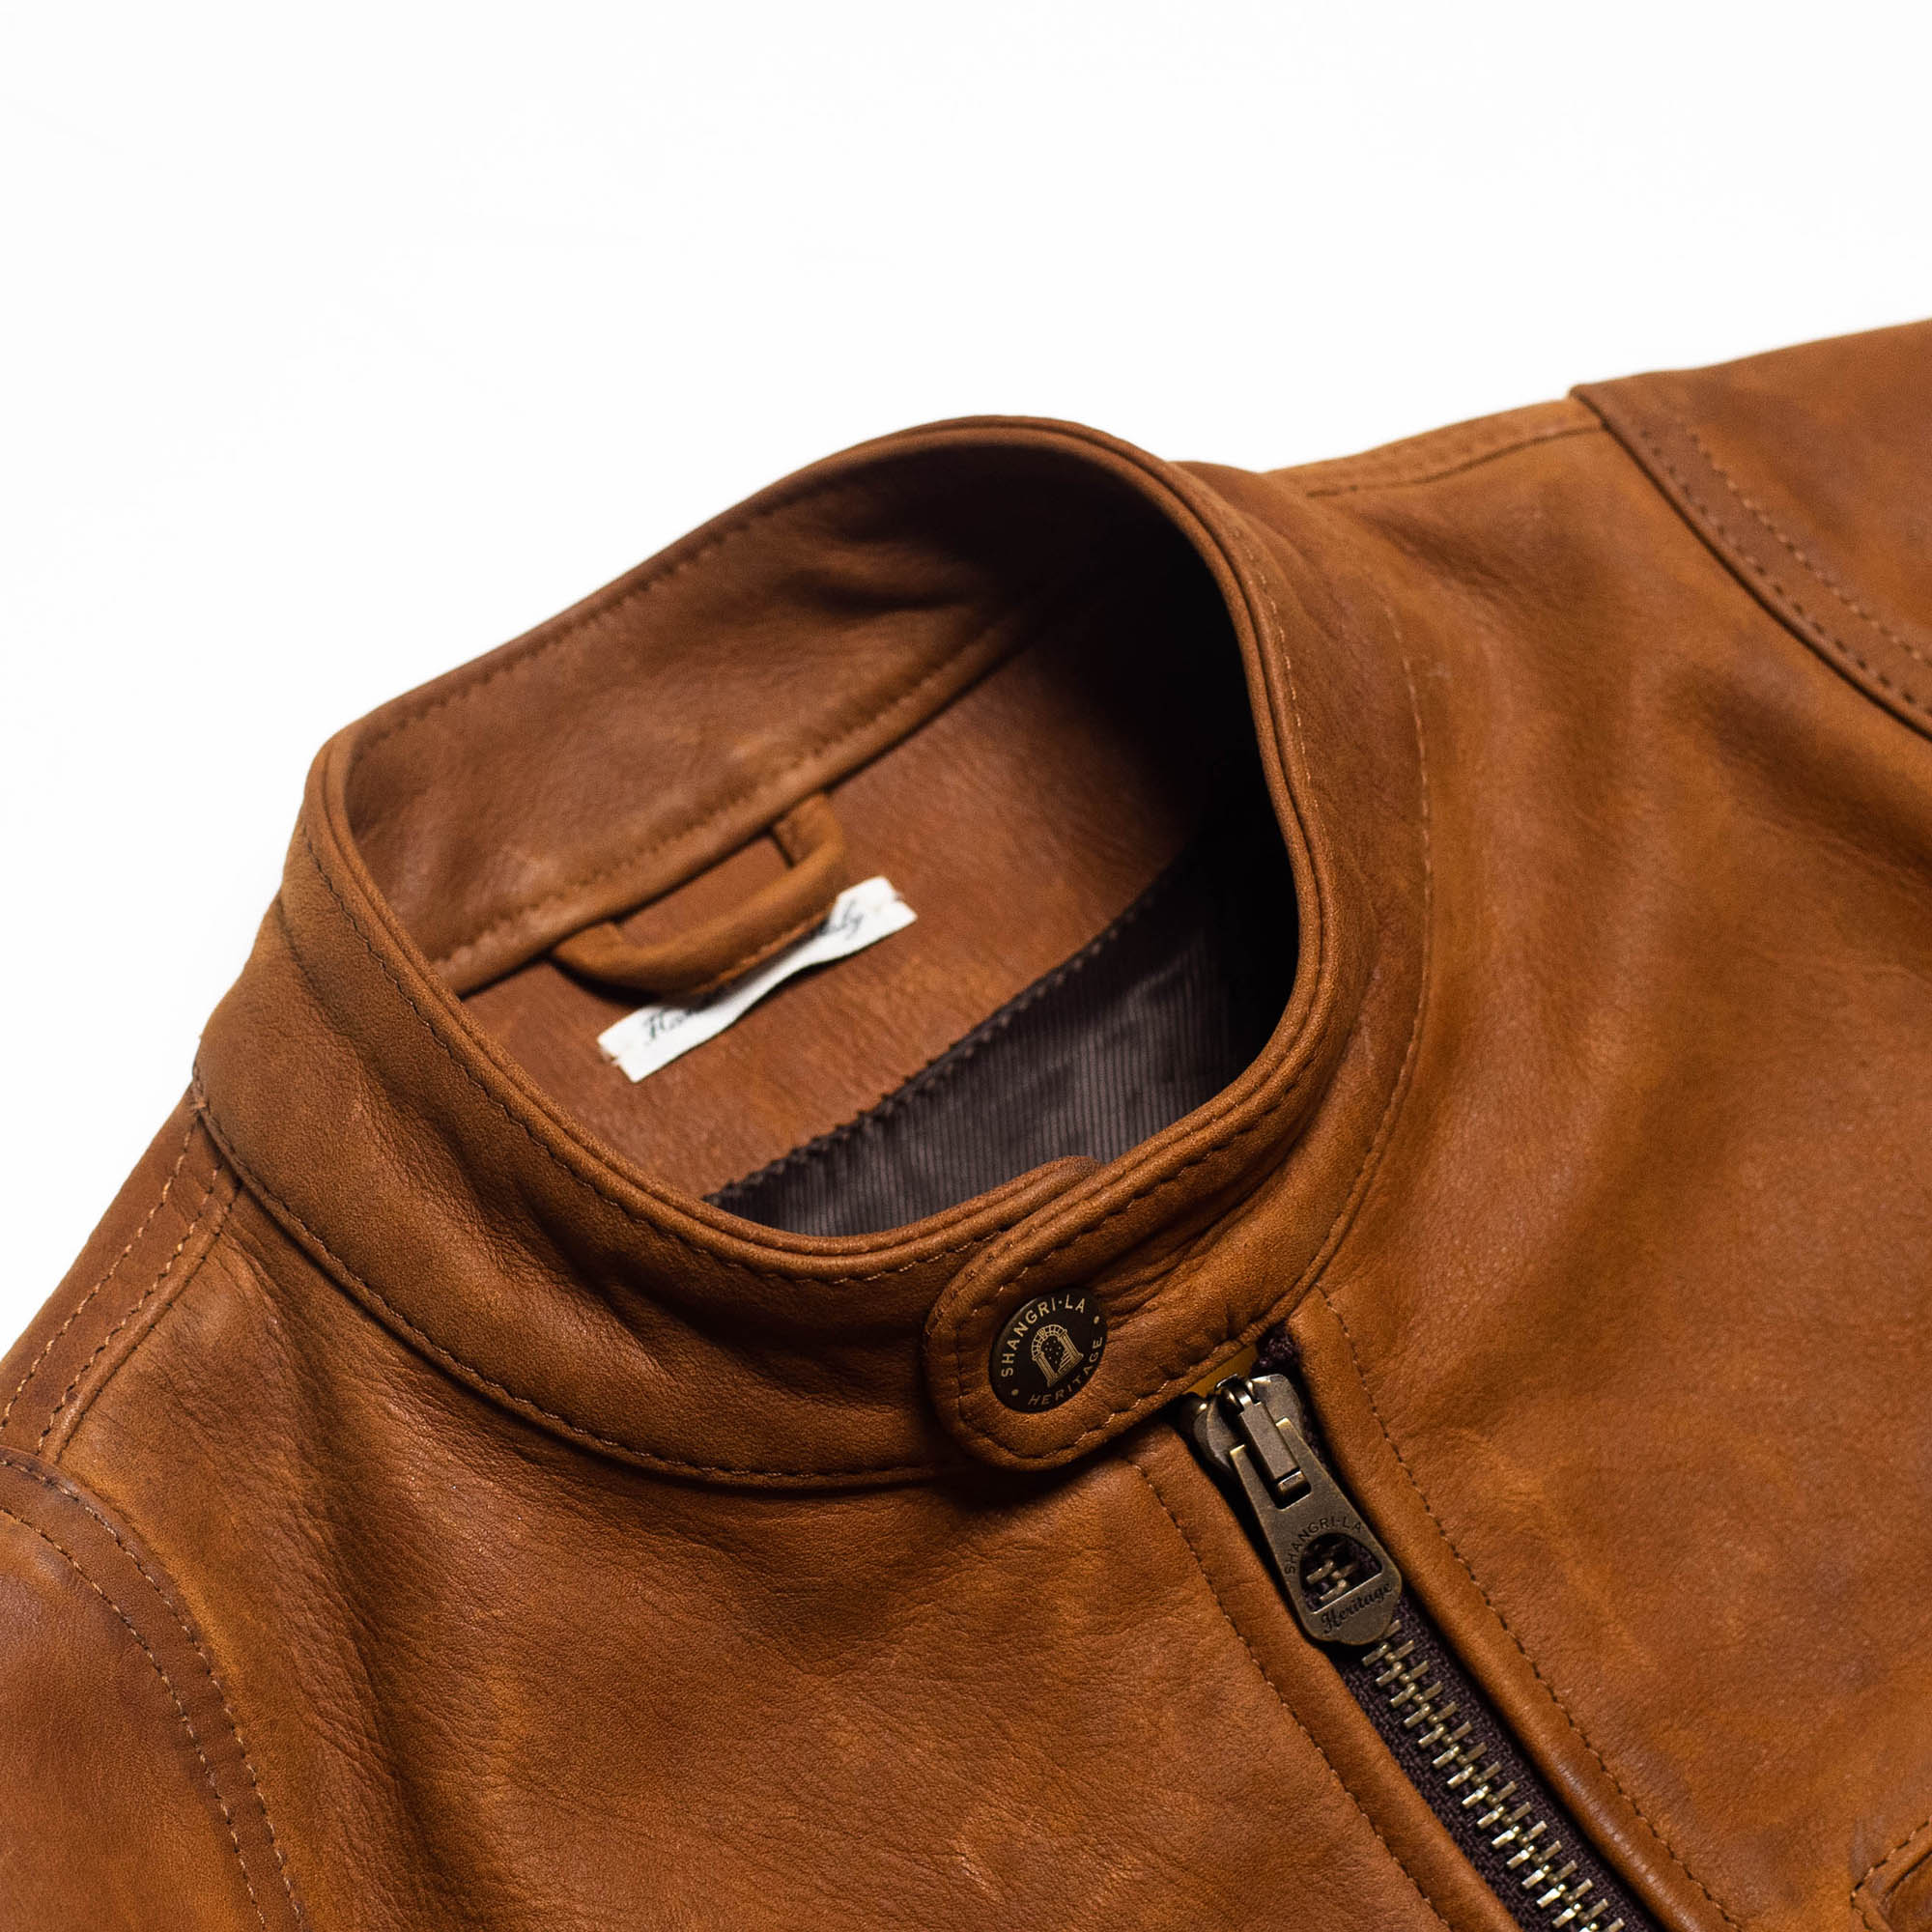 shangri-la-heritage-cafe-racer-nubuck-leather-jacket-still-life-collar